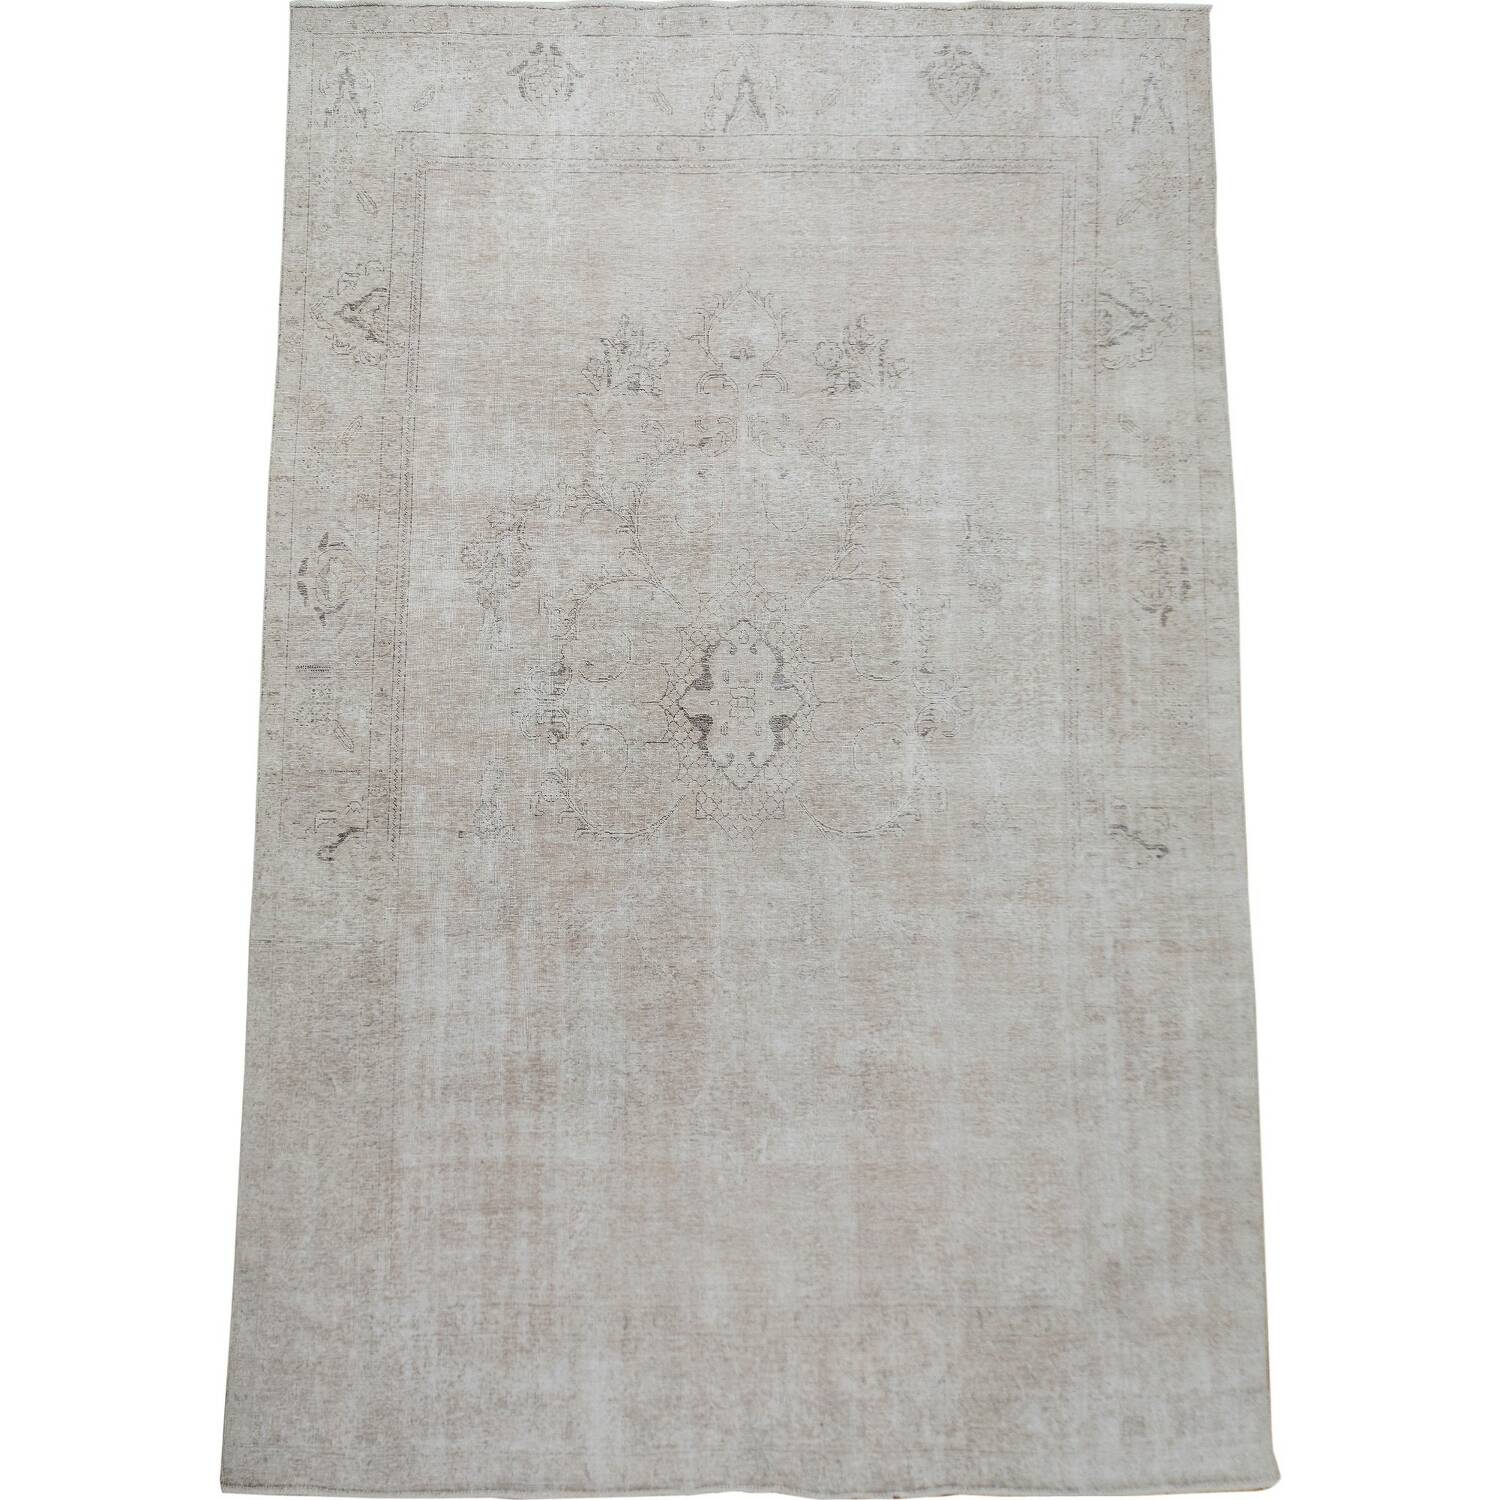 Antique Floral Muted Tabriz Persian Distressed Area Rug 9x12 image 2